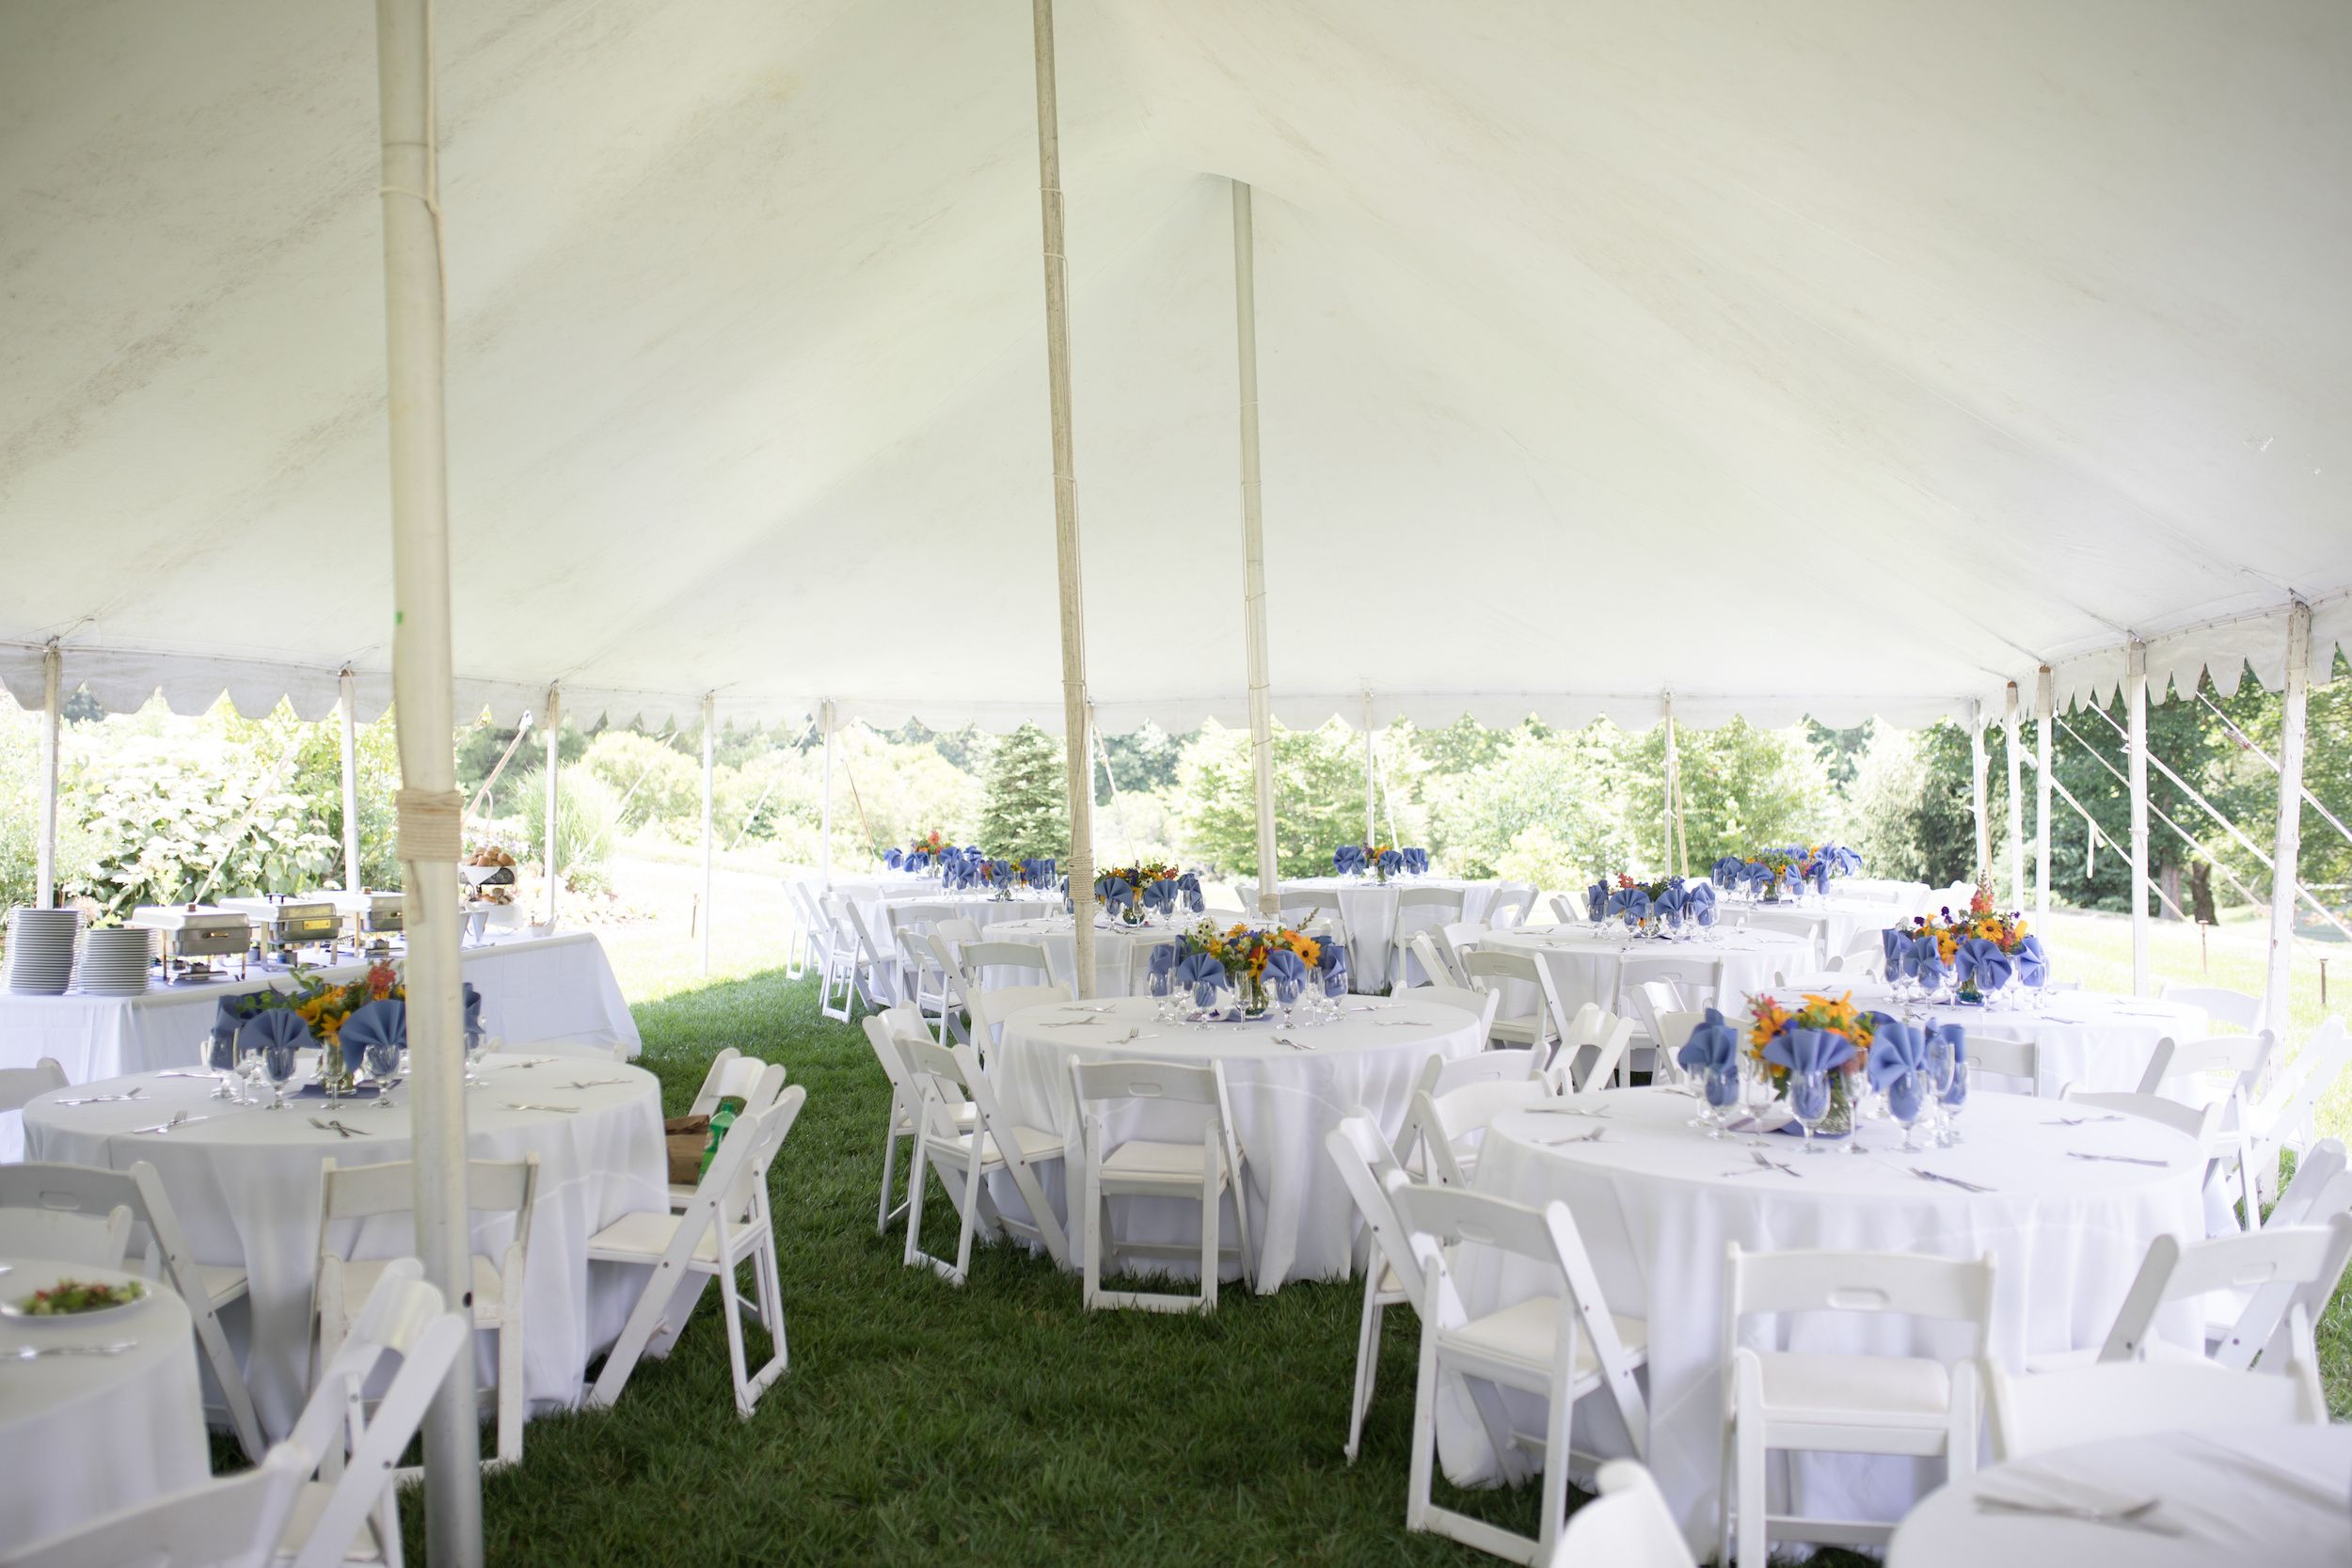 2020 Best Types Of Chair Rentals For Events Reventals Event Rentals Event Tent Wedding Tent Tent